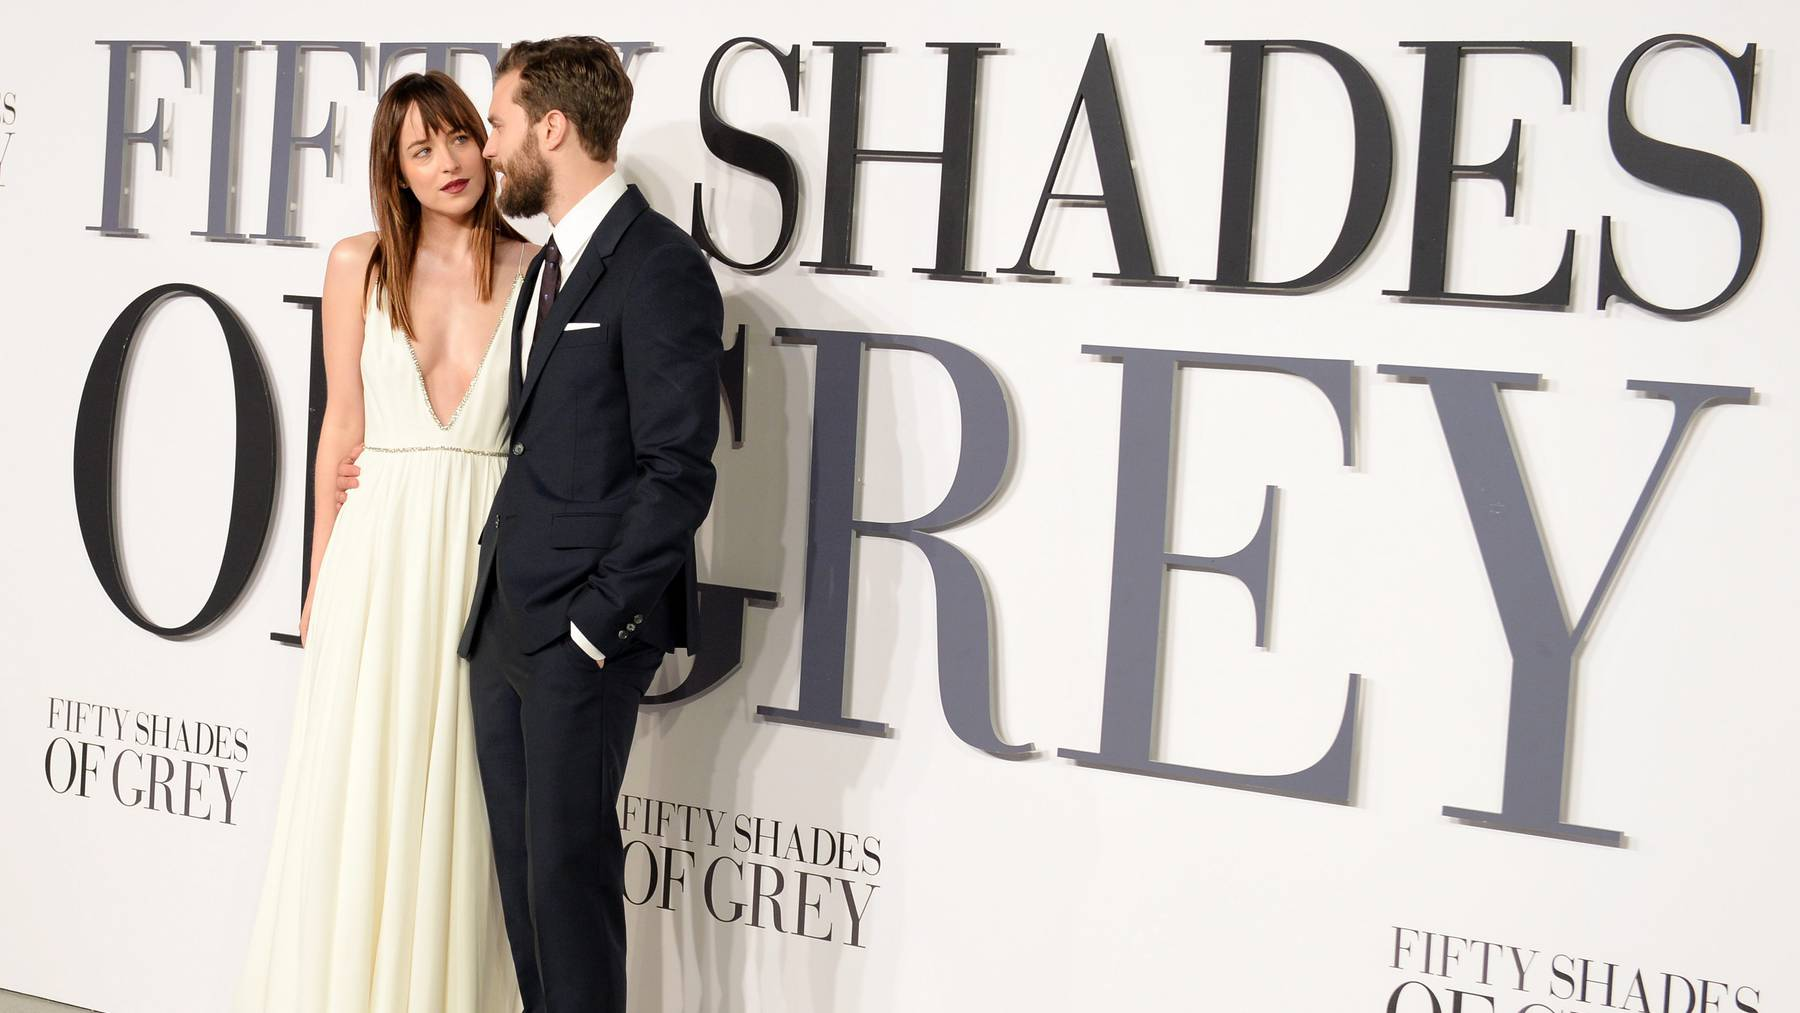 «Fifty Shades of Grey»: Am 1. Juni kommt «Freed: Fifty